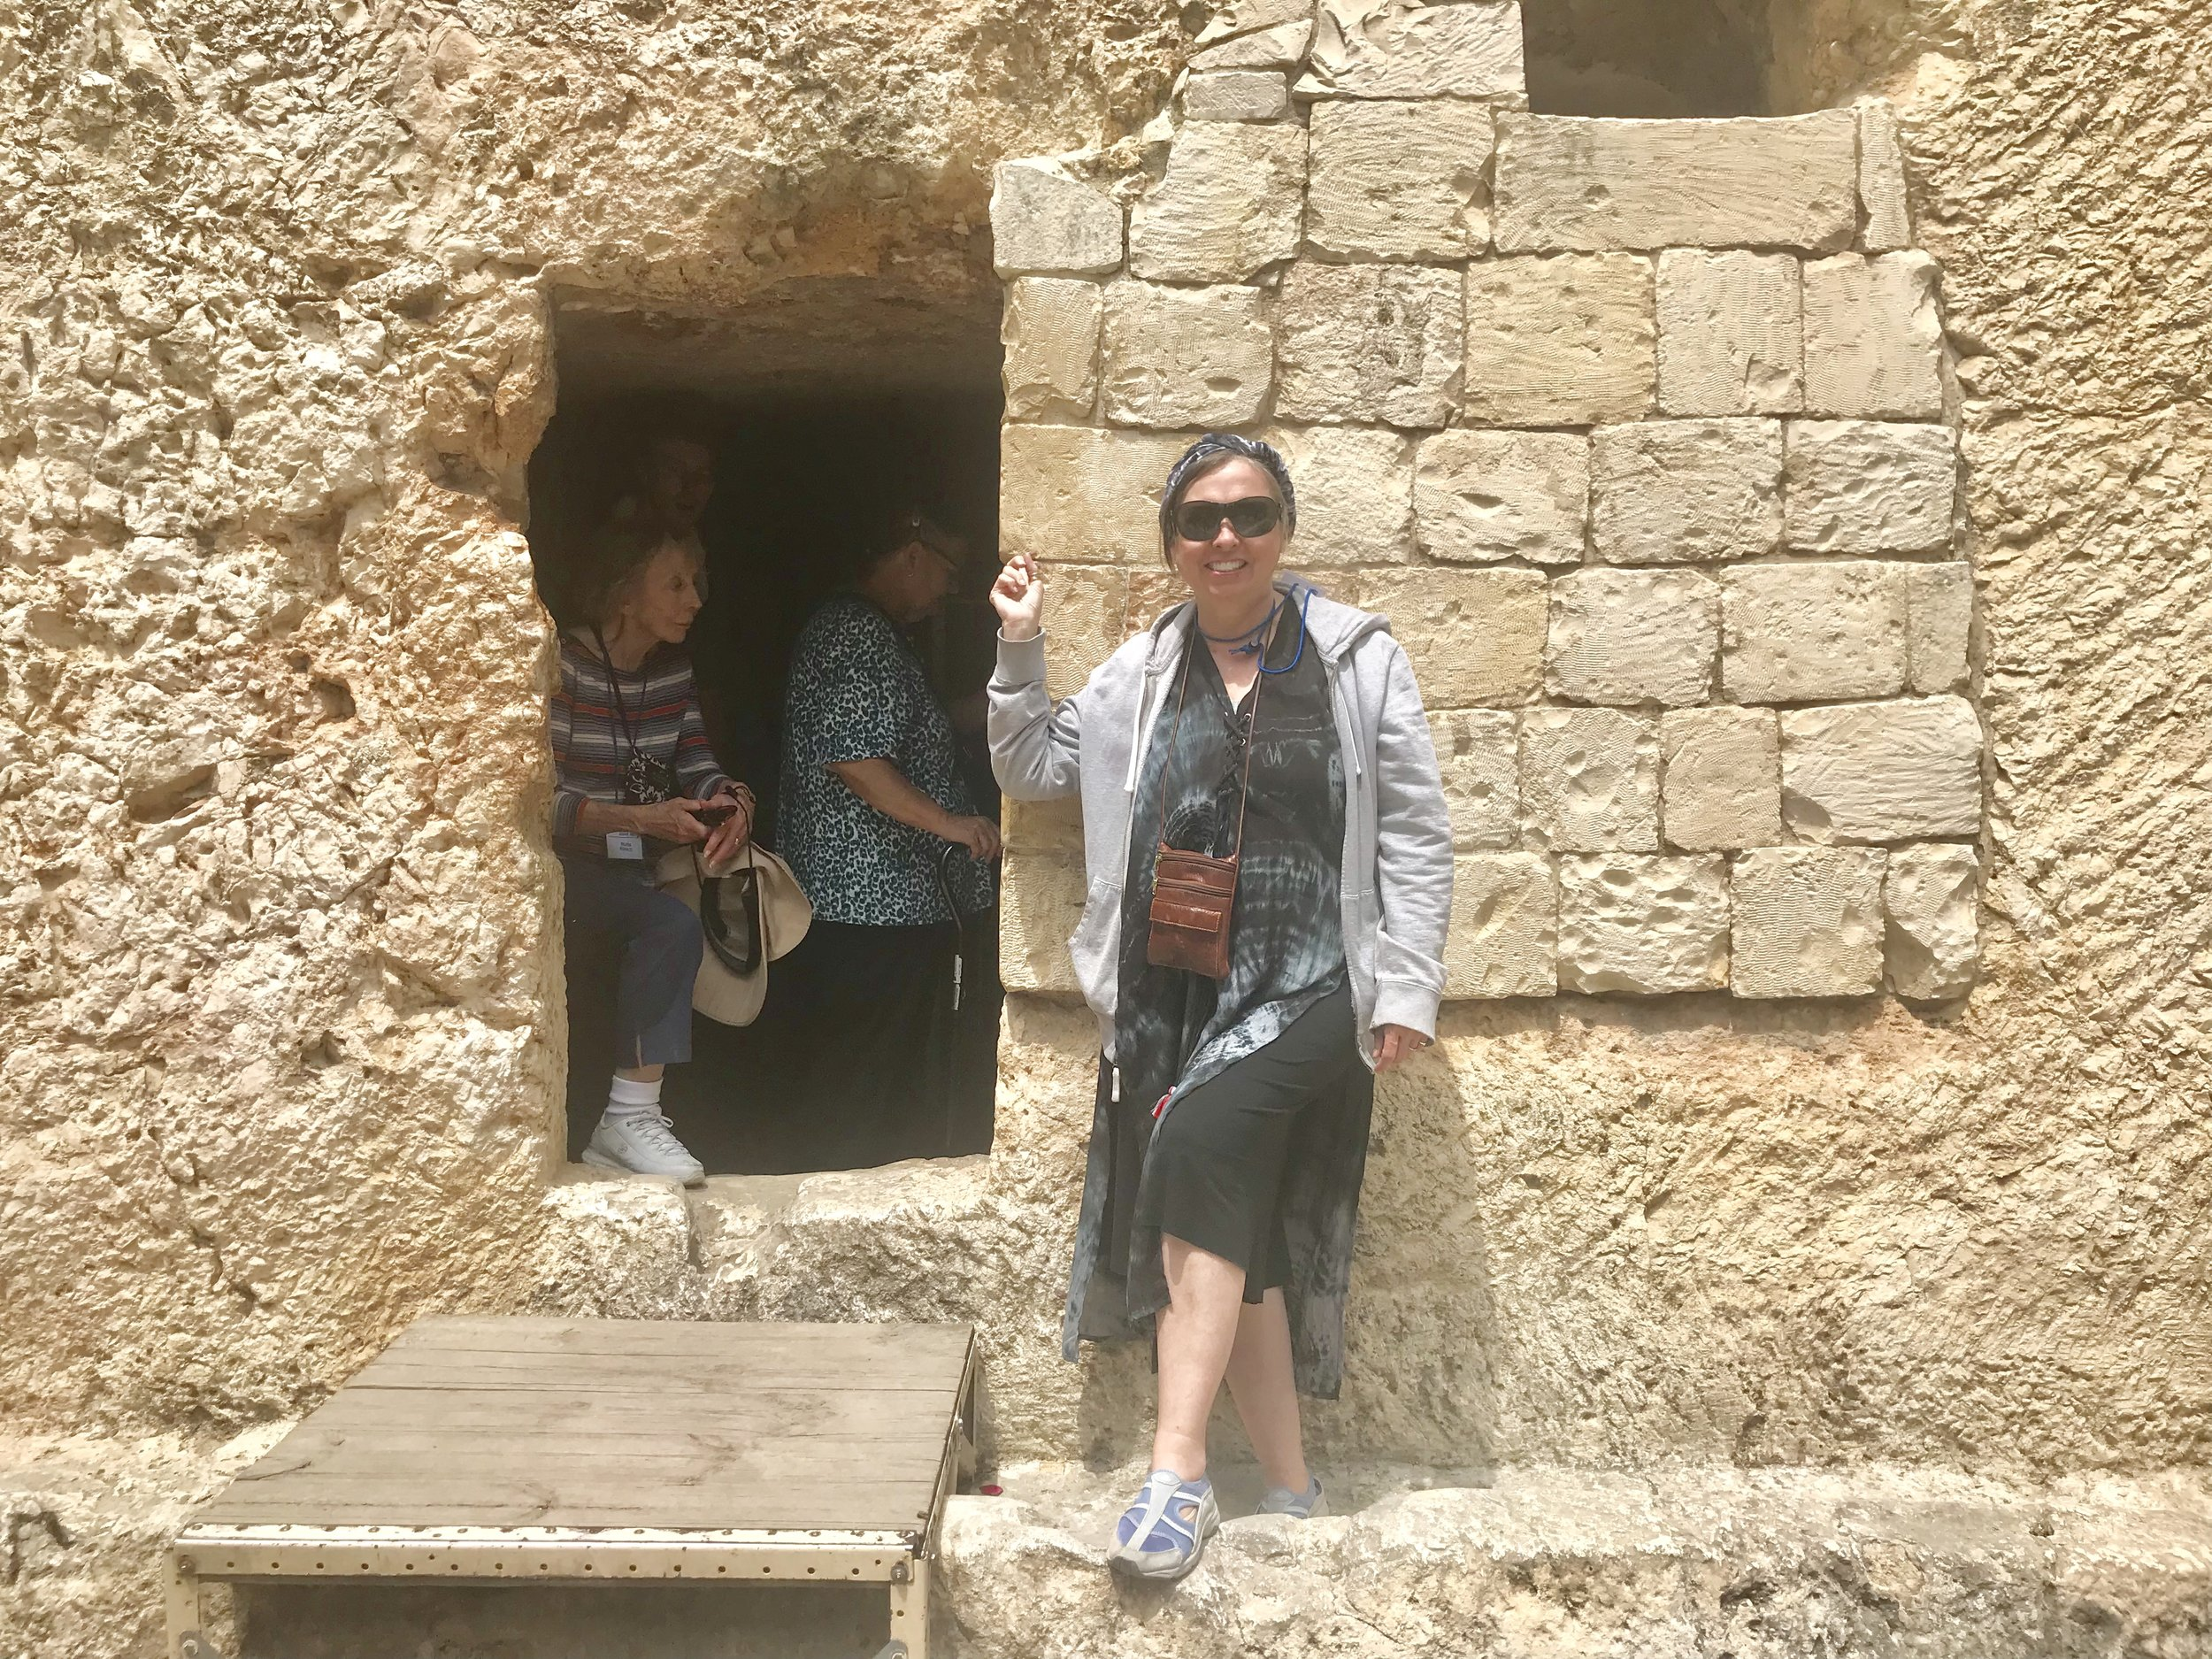 At the Tomb Entrance